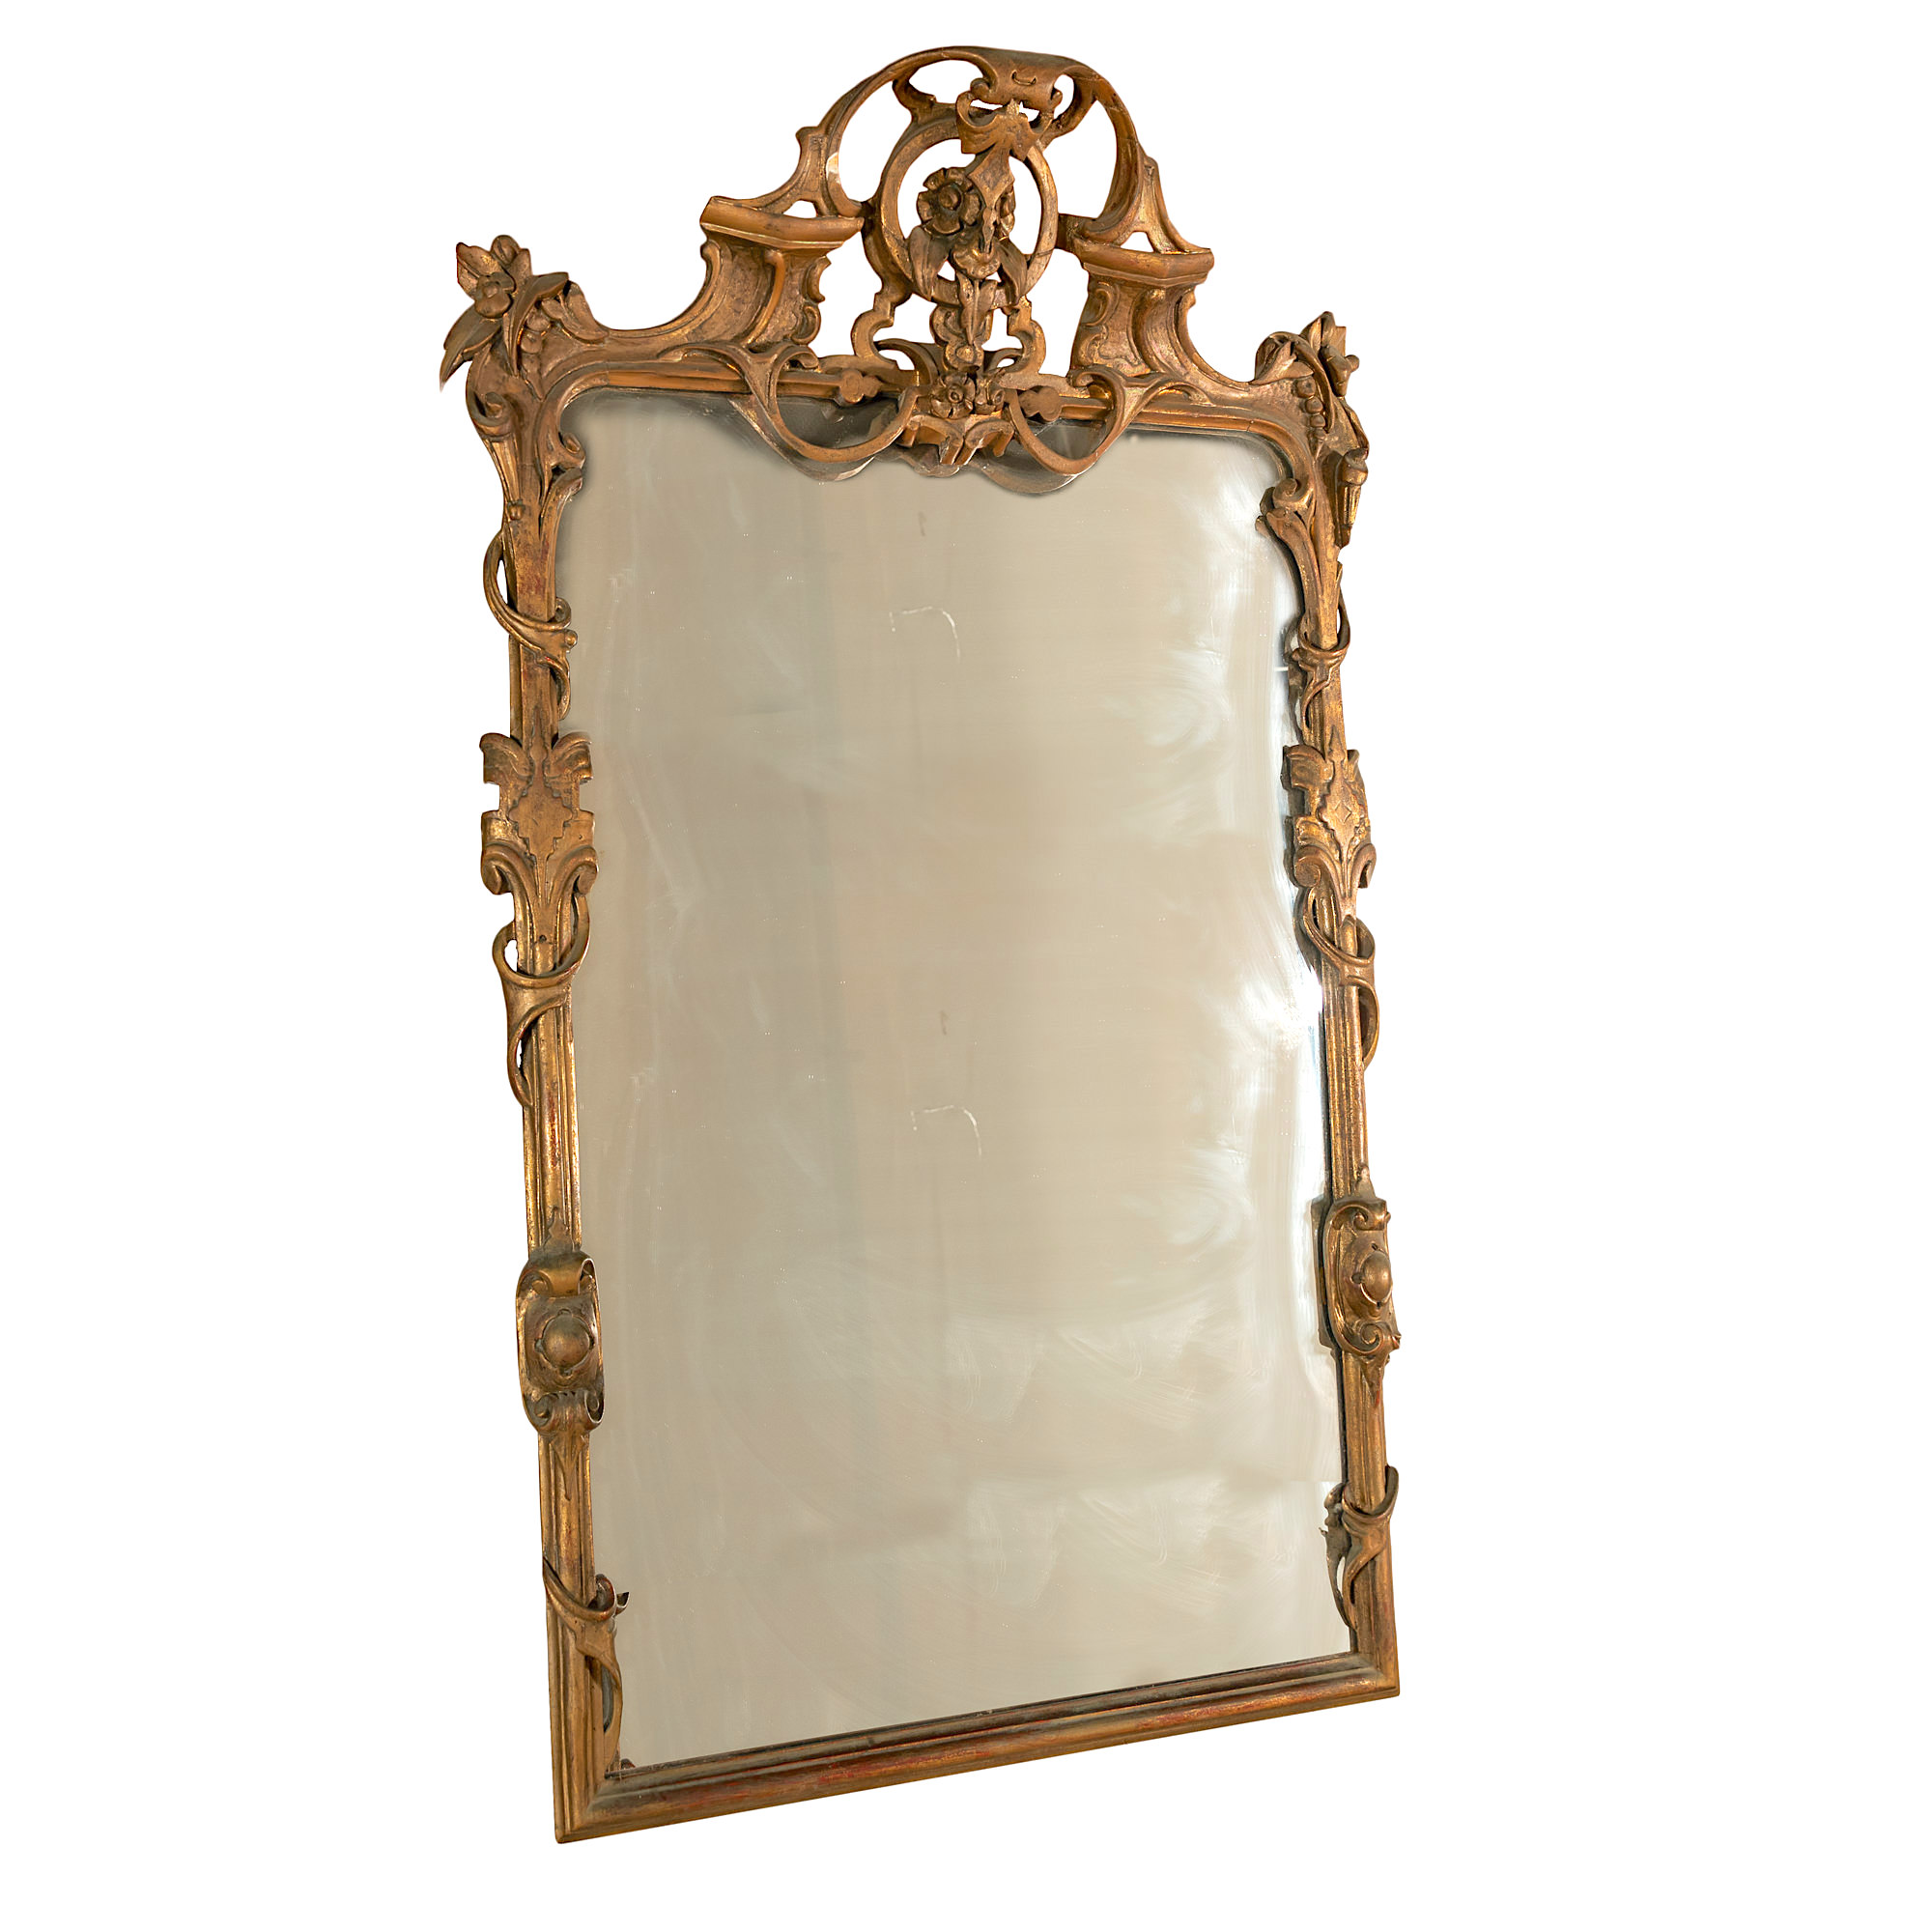 'Large English Scrolled And Foliate Carved Giltwood Mirror 19th Century'